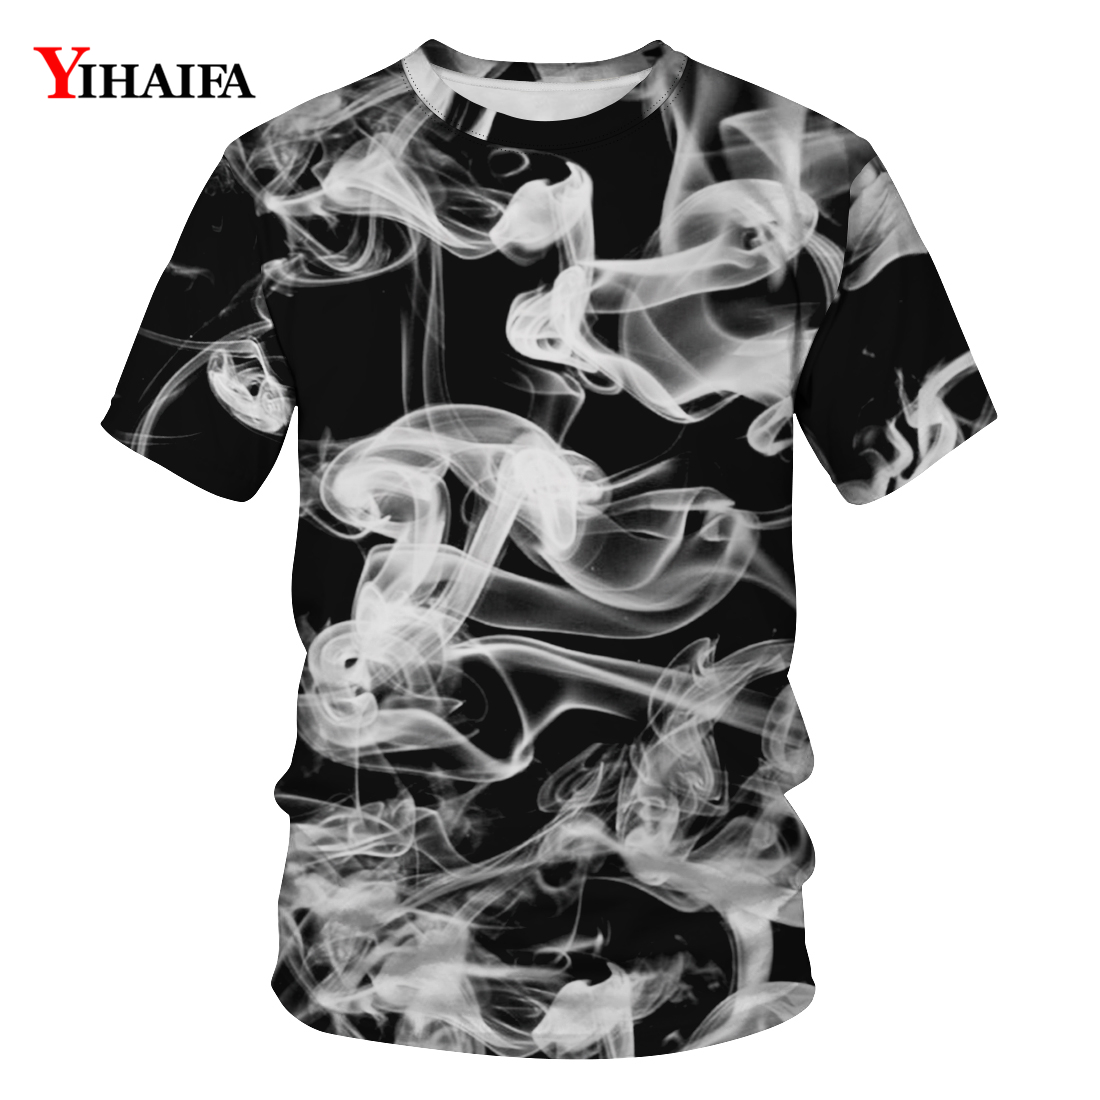 2019 Men Women Fashion 3D T shirt Creative Foggy Graphic T shirts Casual Short Sleeve Hip Hop Tees Unisex Tops in T Shirts from Men 39 s Clothing